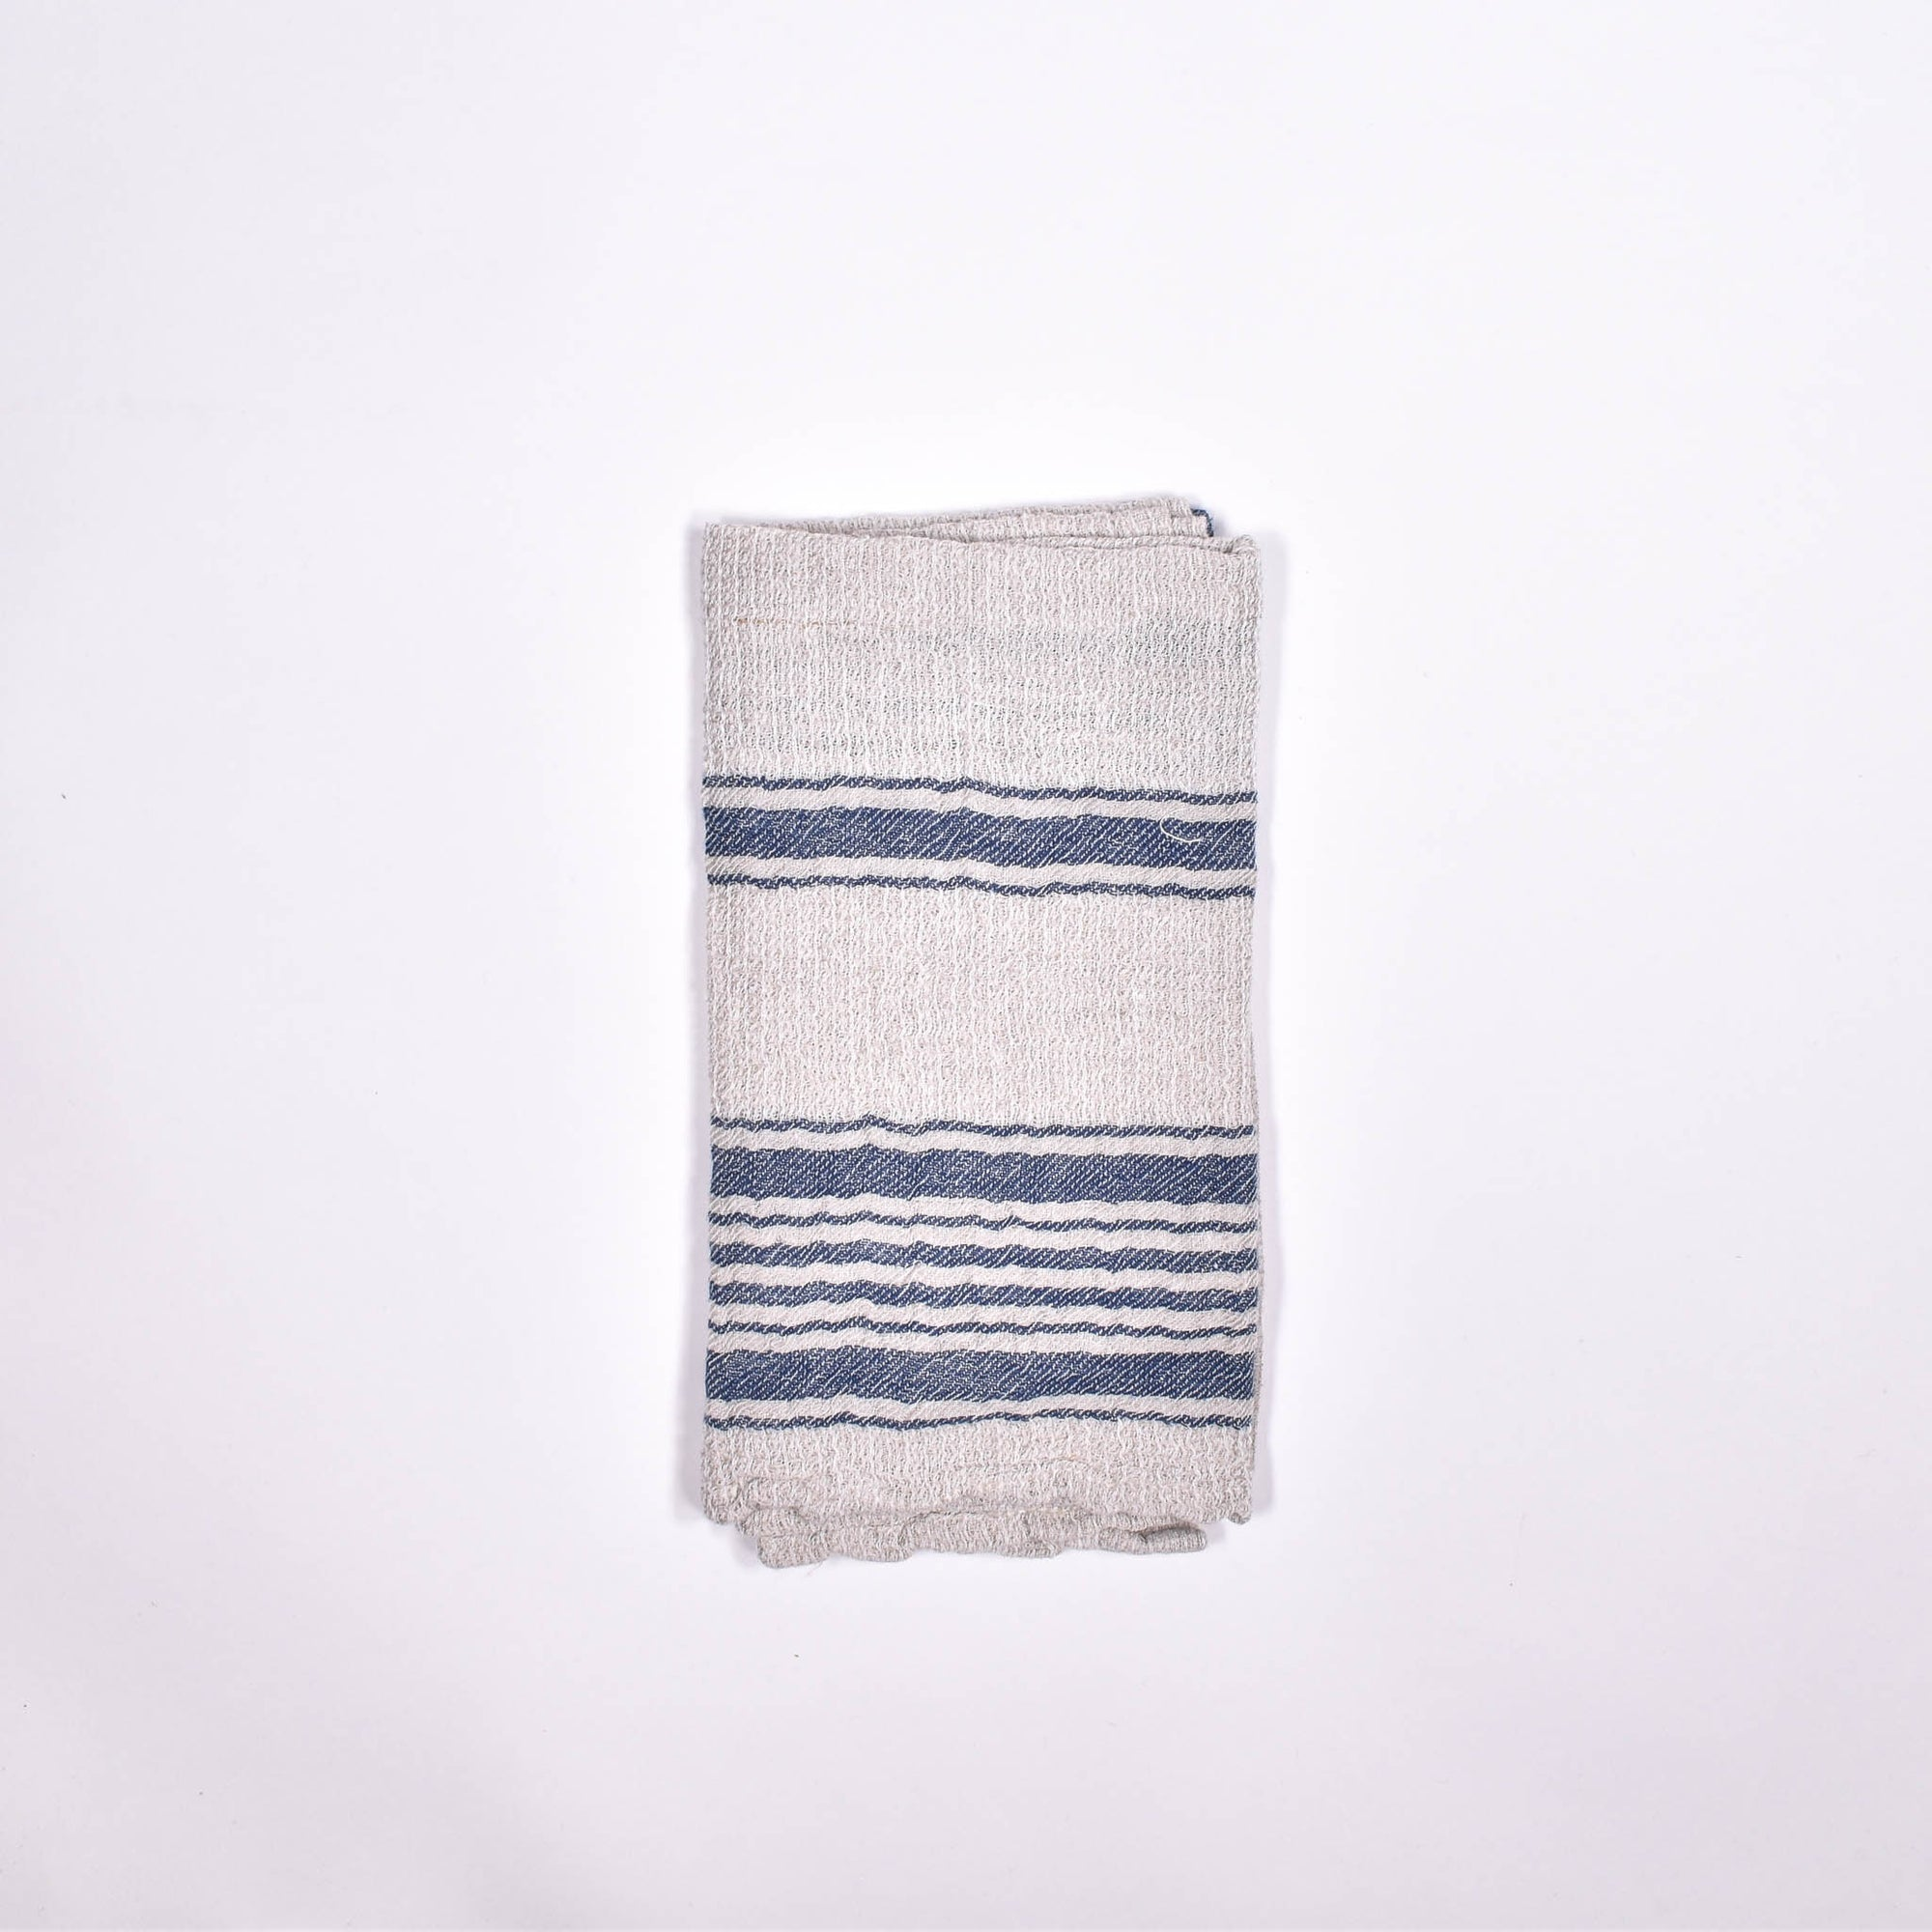 Sonoma Kitchen Towel - Rug & Weave